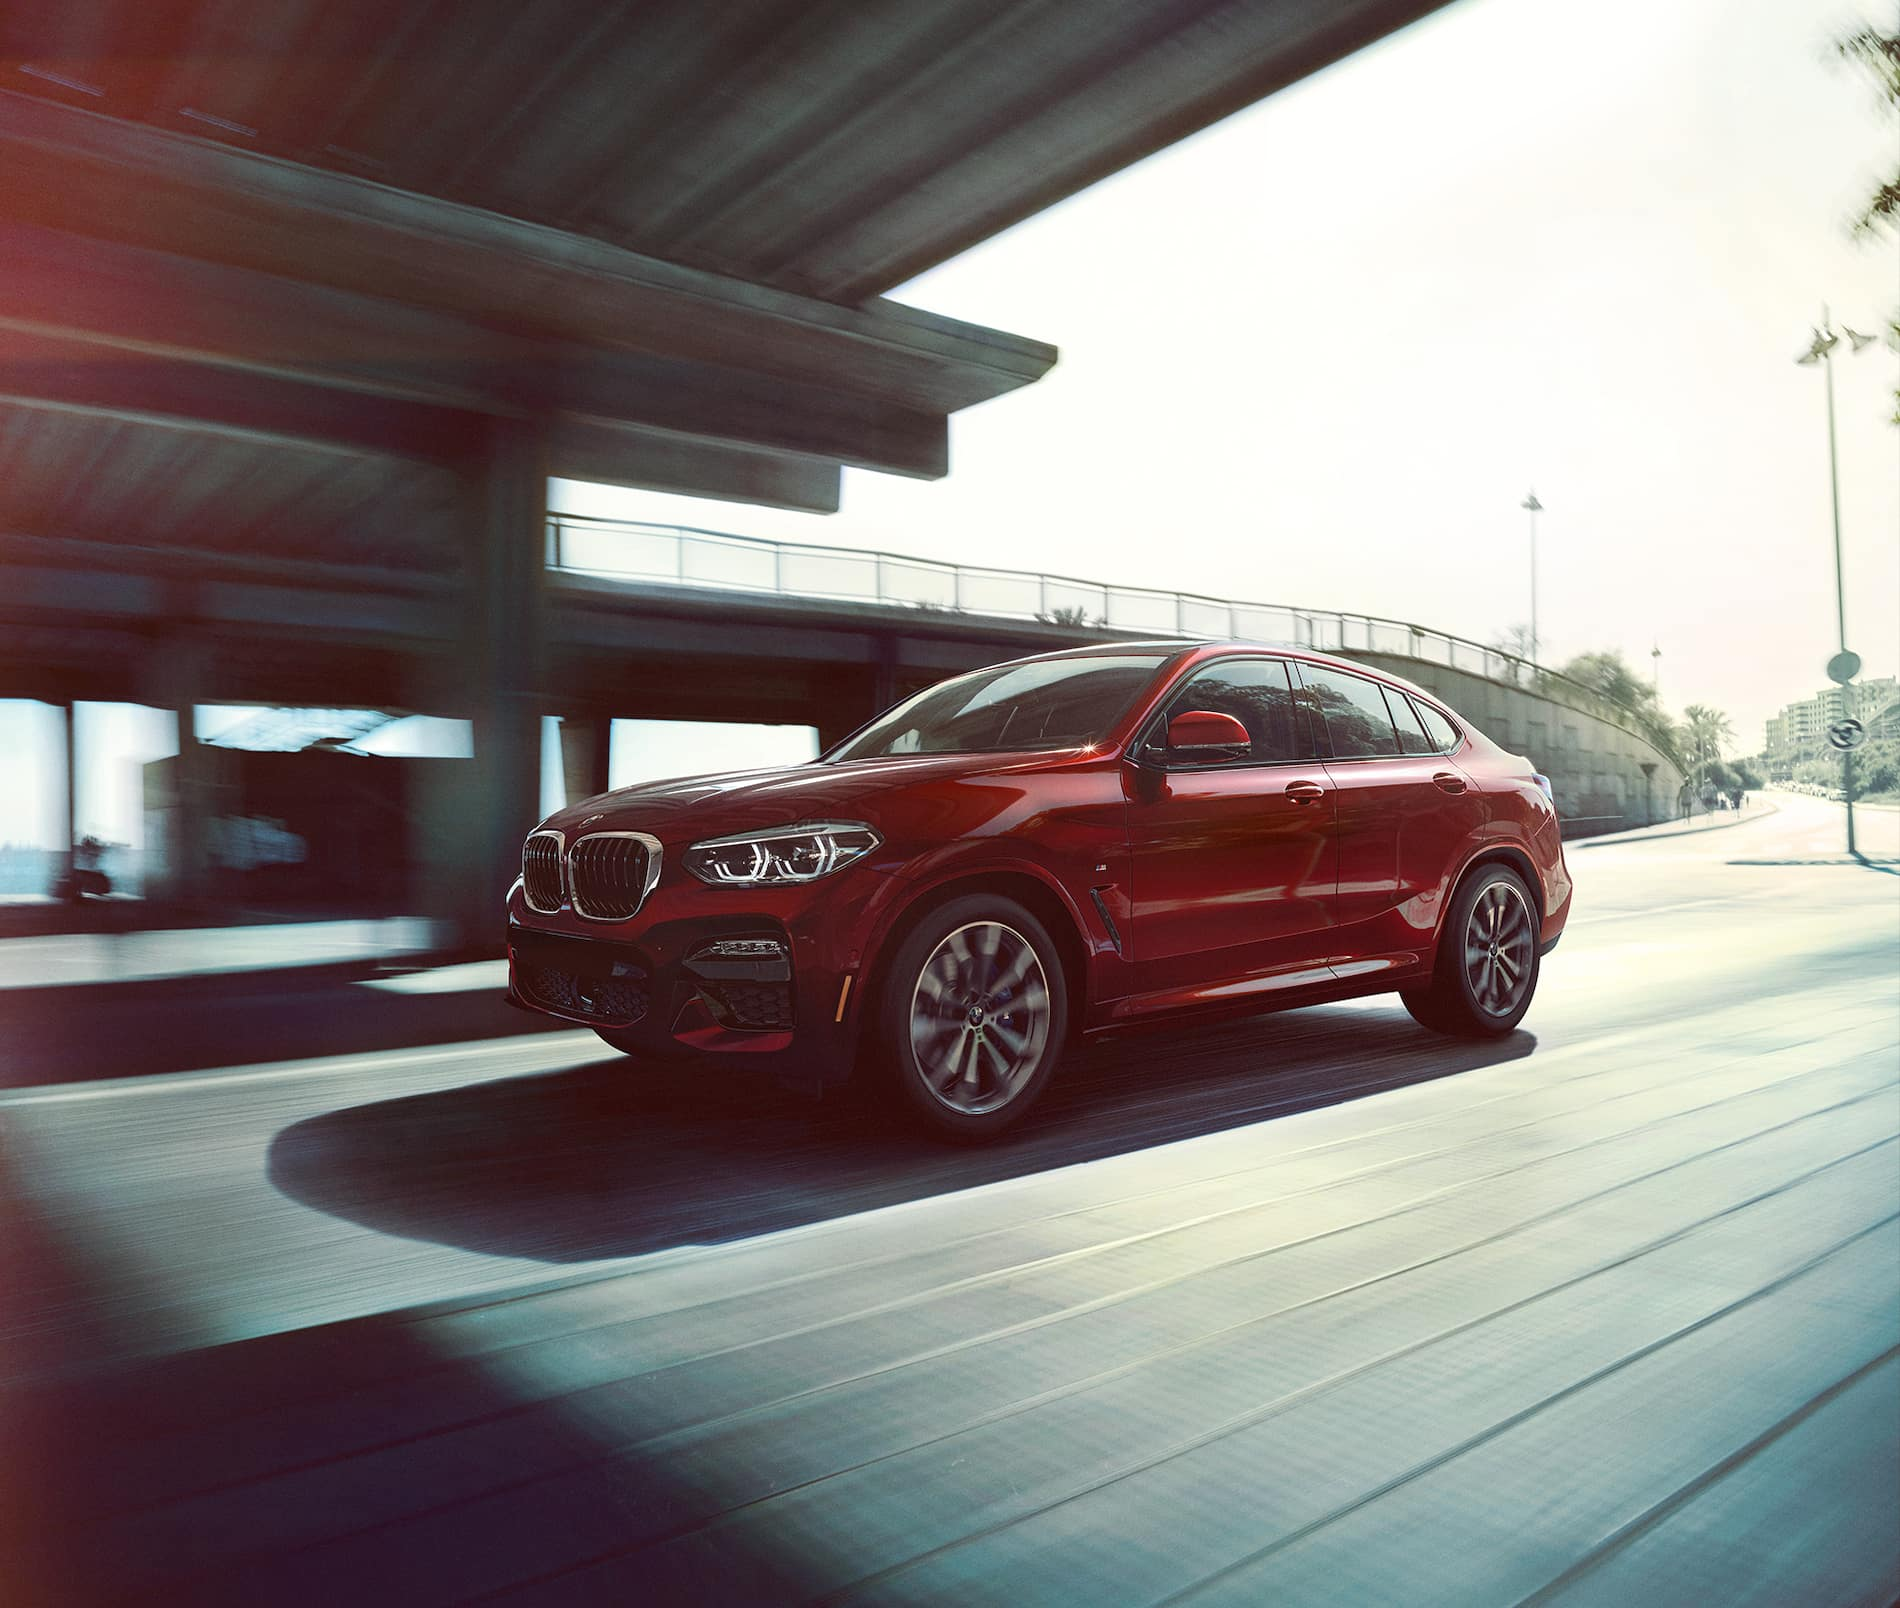 BMW X4 Side View Red